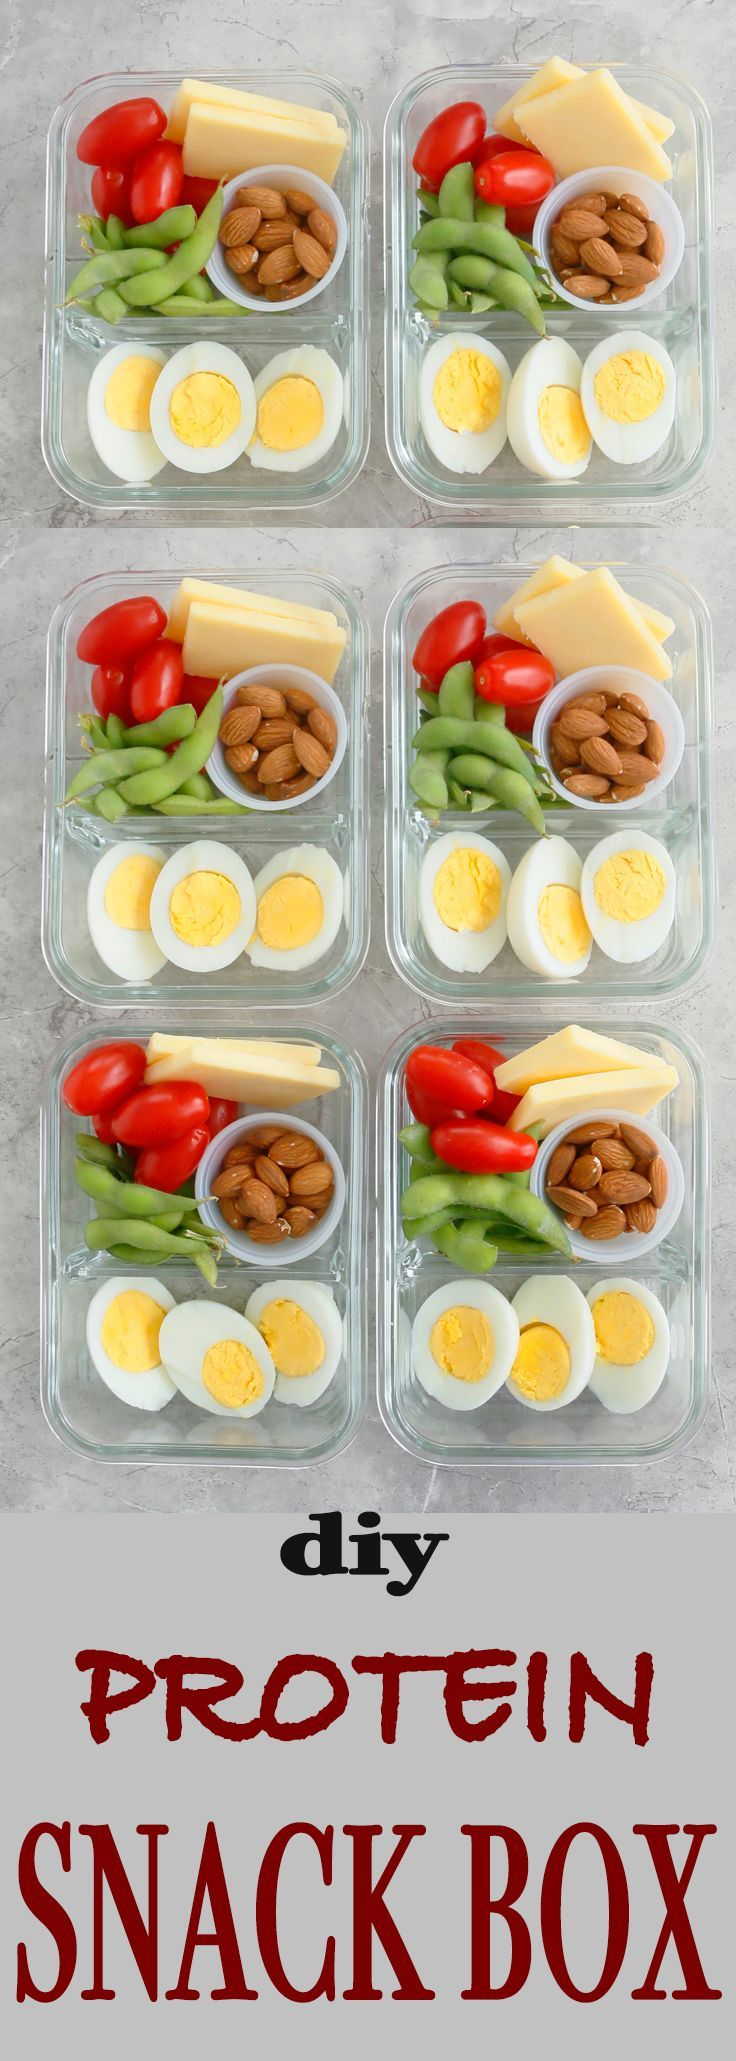 DIY Protein Snack Box Meal Prep - Kitchen @ Hoskins